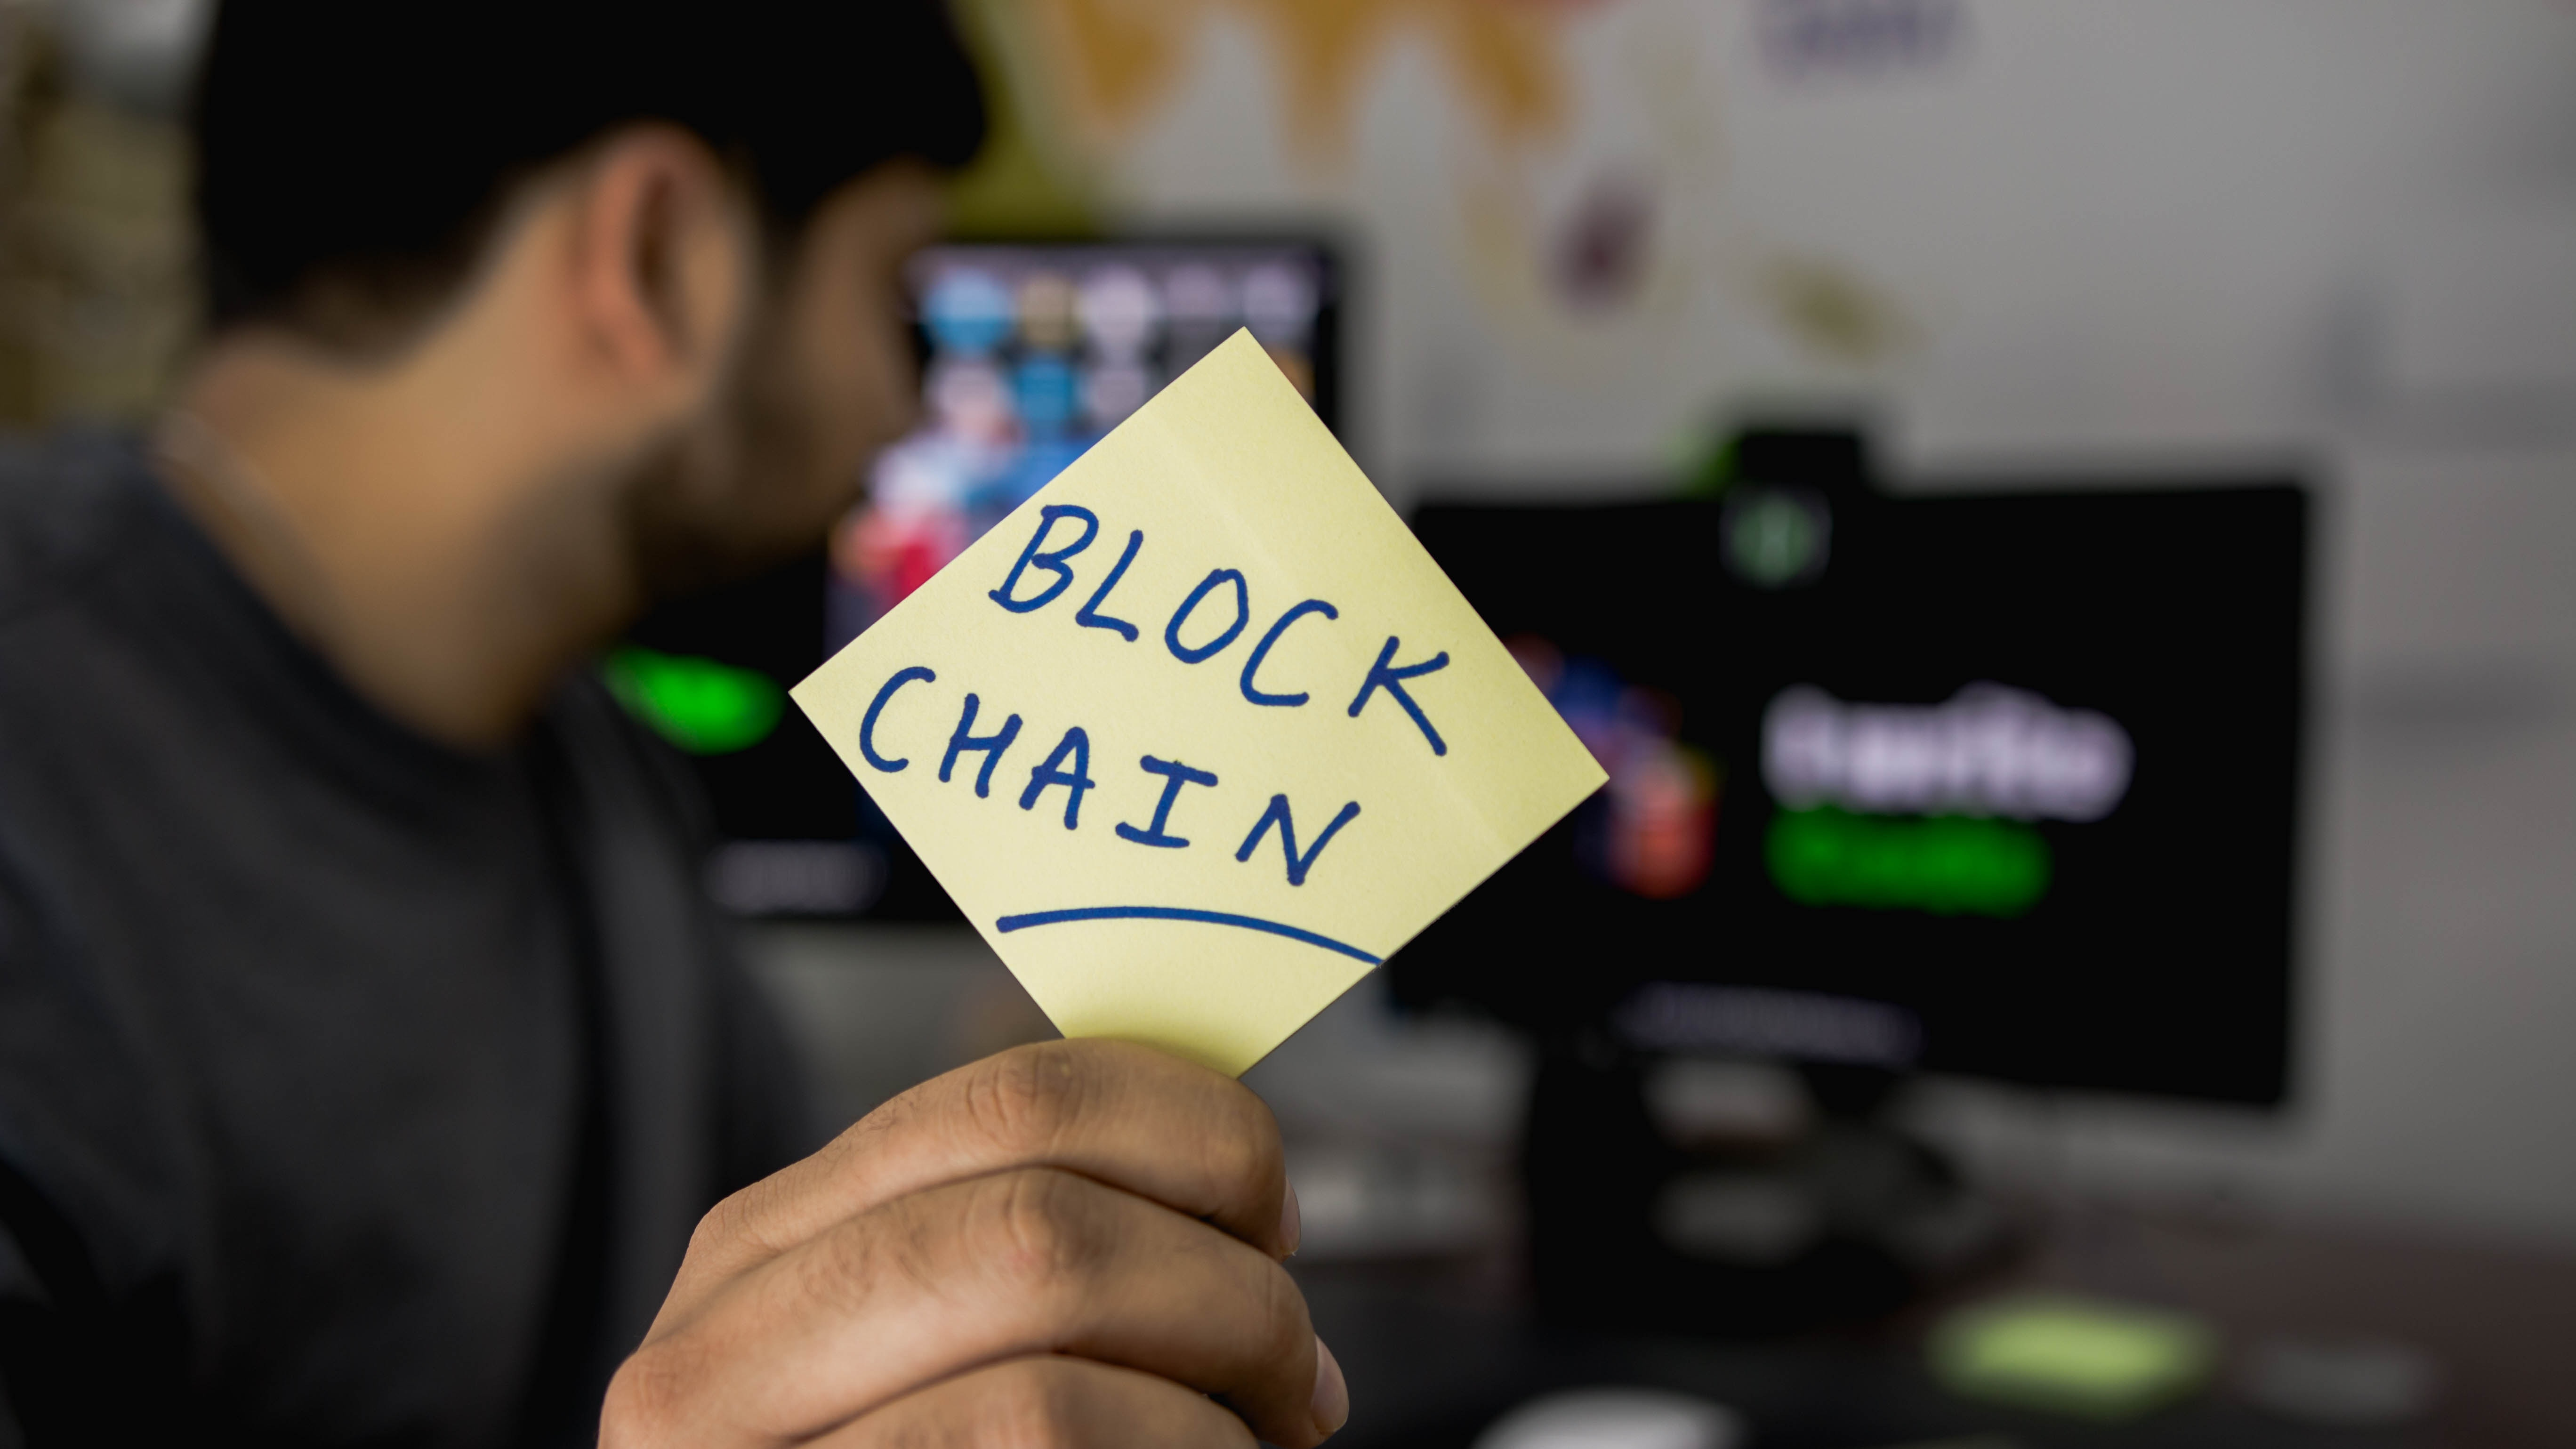 What Blockchain and Cloud Computing Have in Common